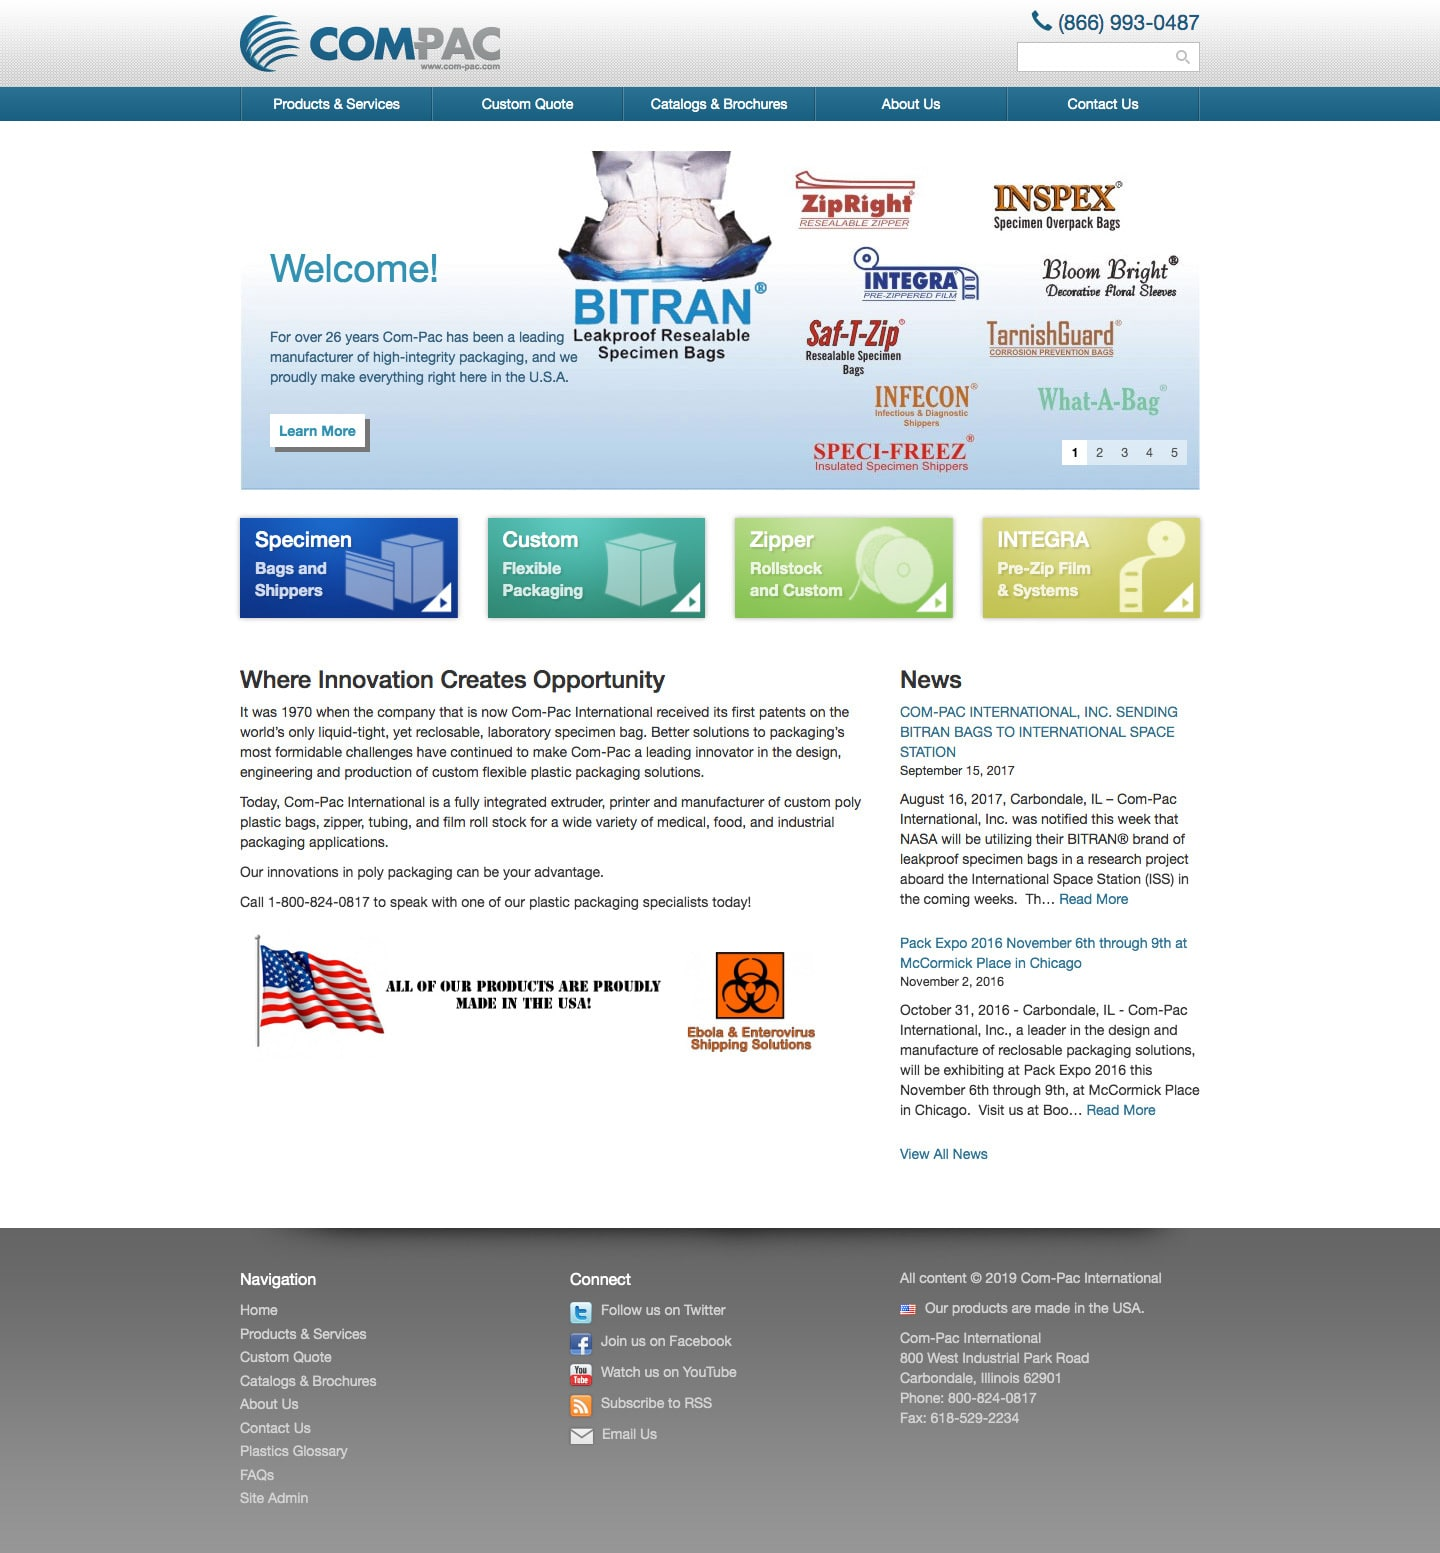 Com-Pac website screenshot